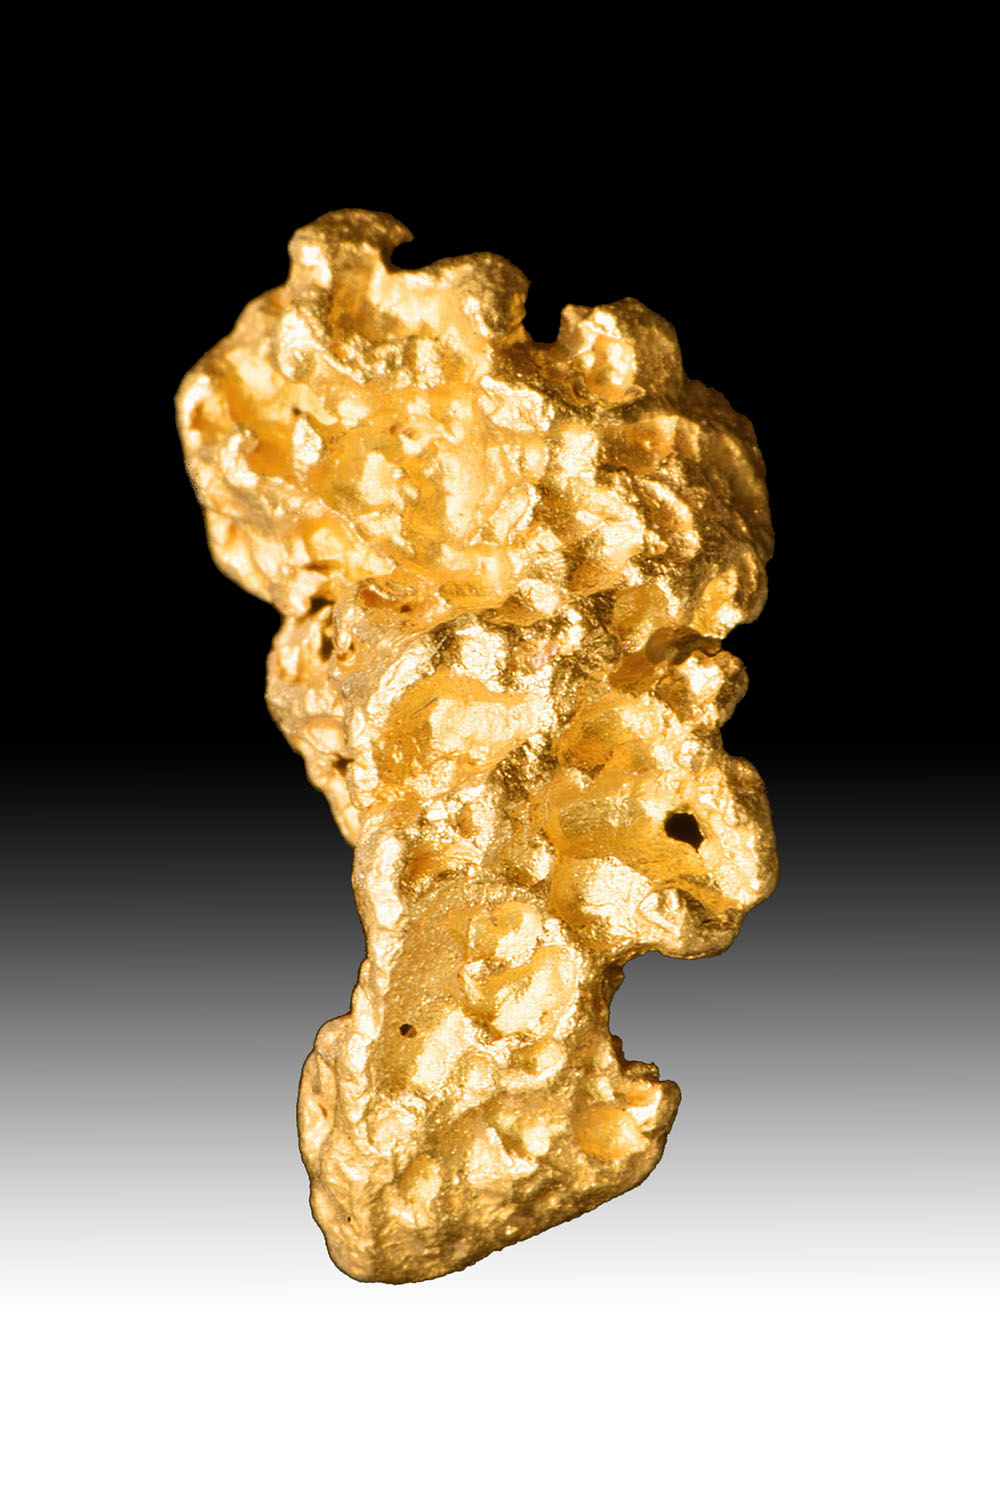 Oblong and Textured - Jewelry Grade Australian Gold Nugget